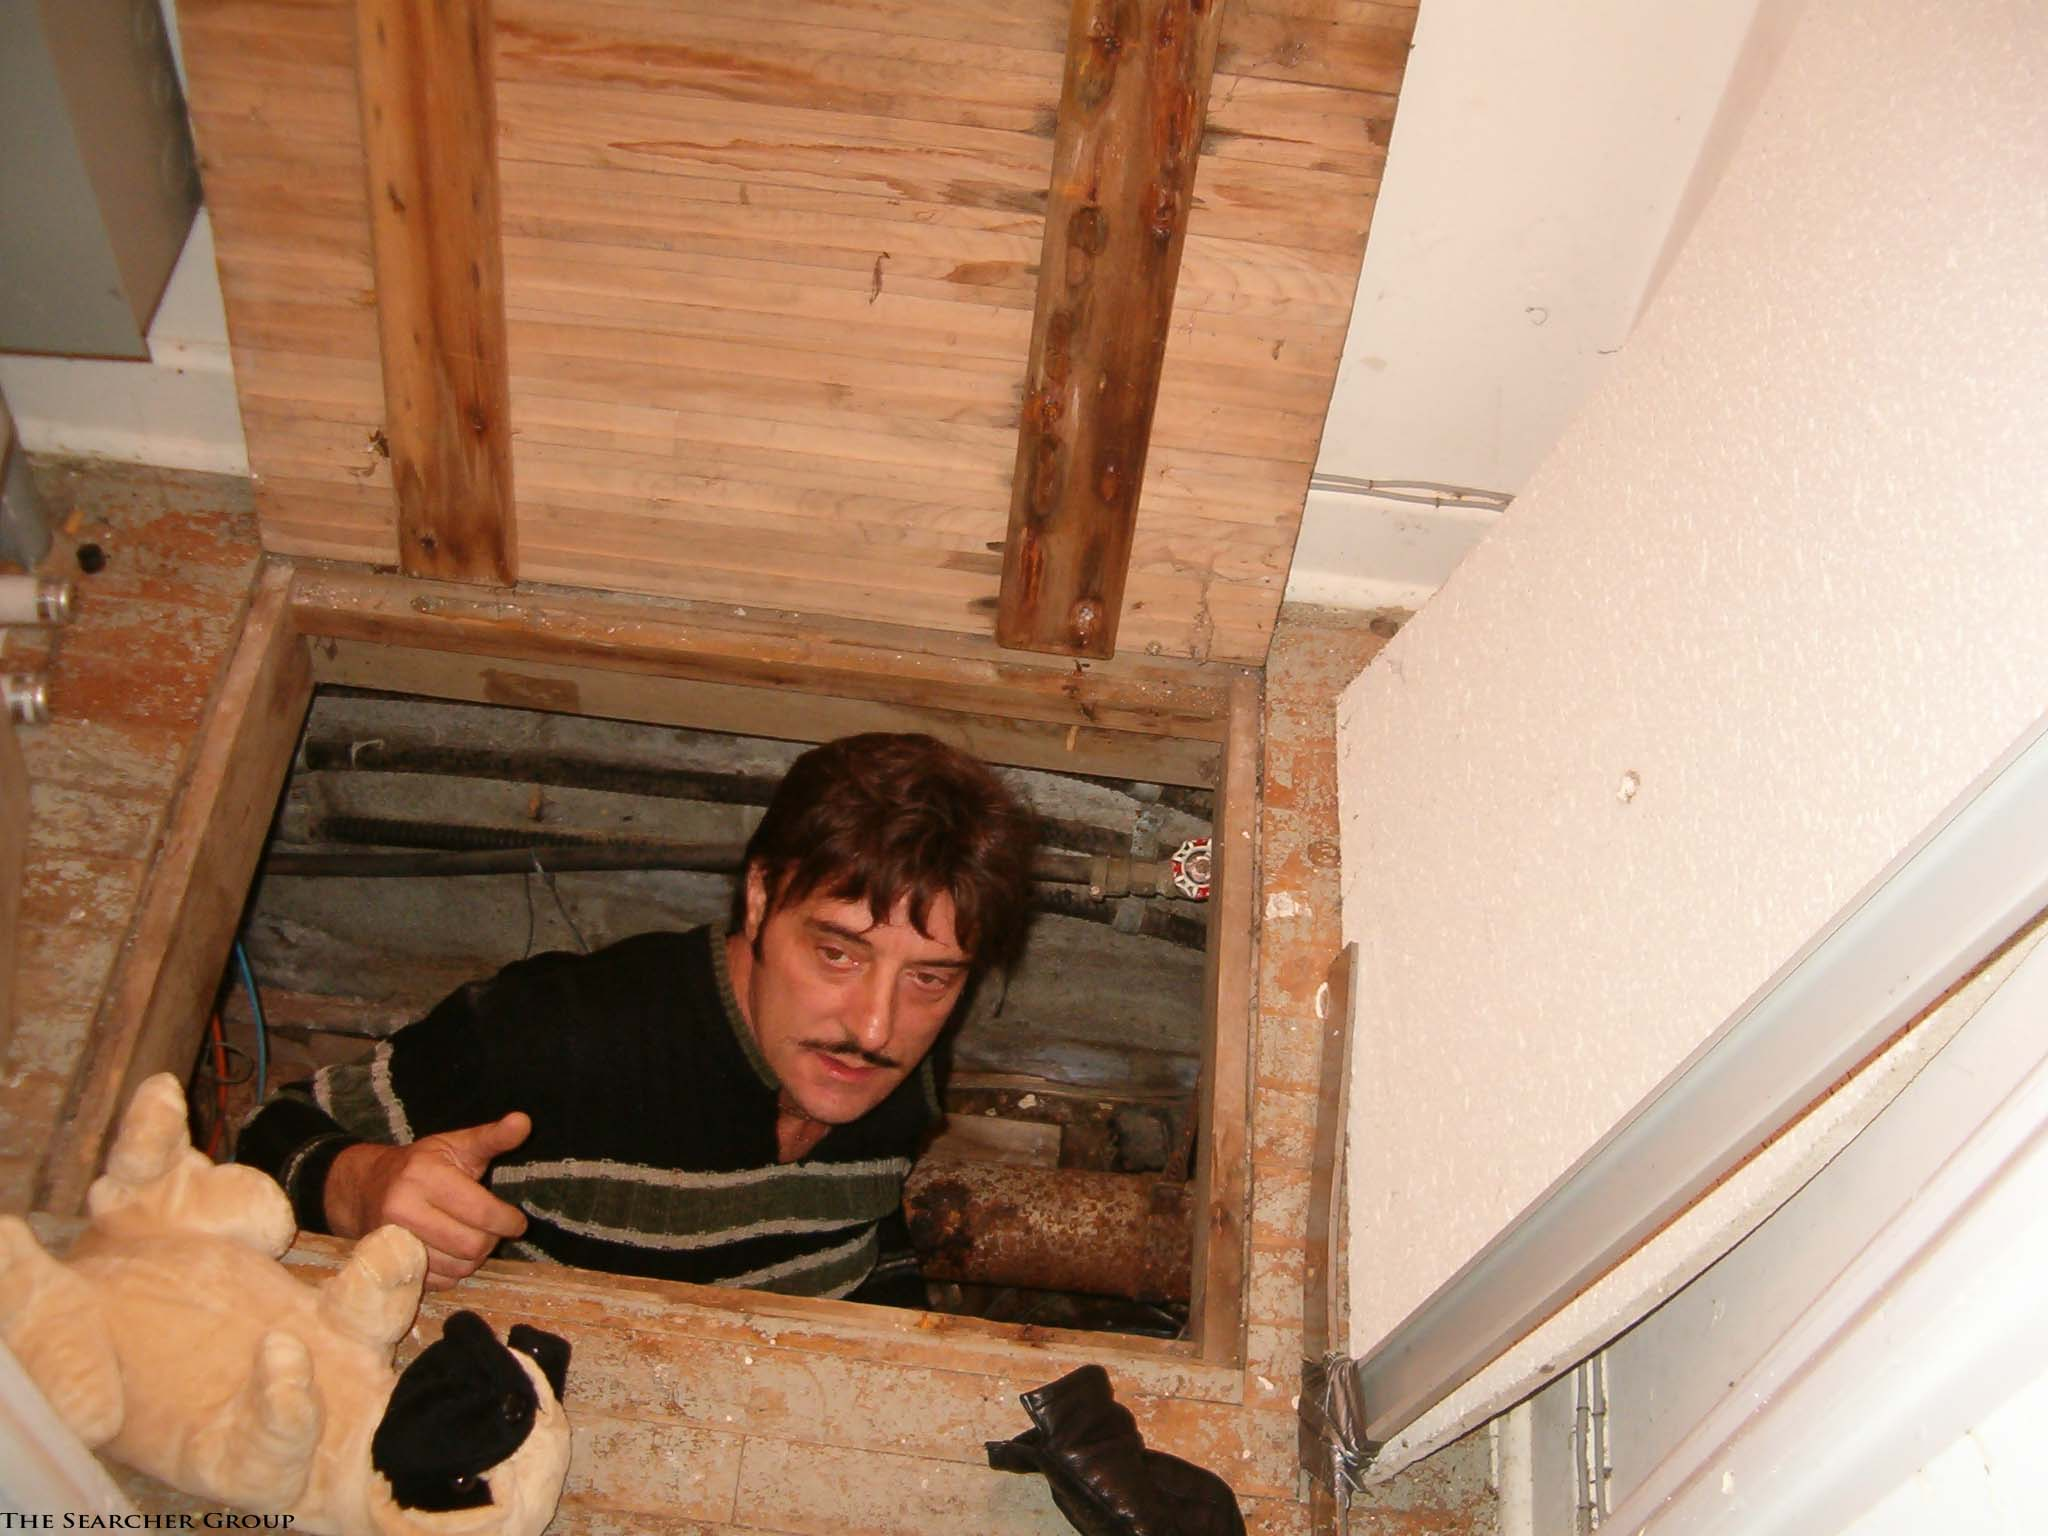 Paul searching in crawl space in house